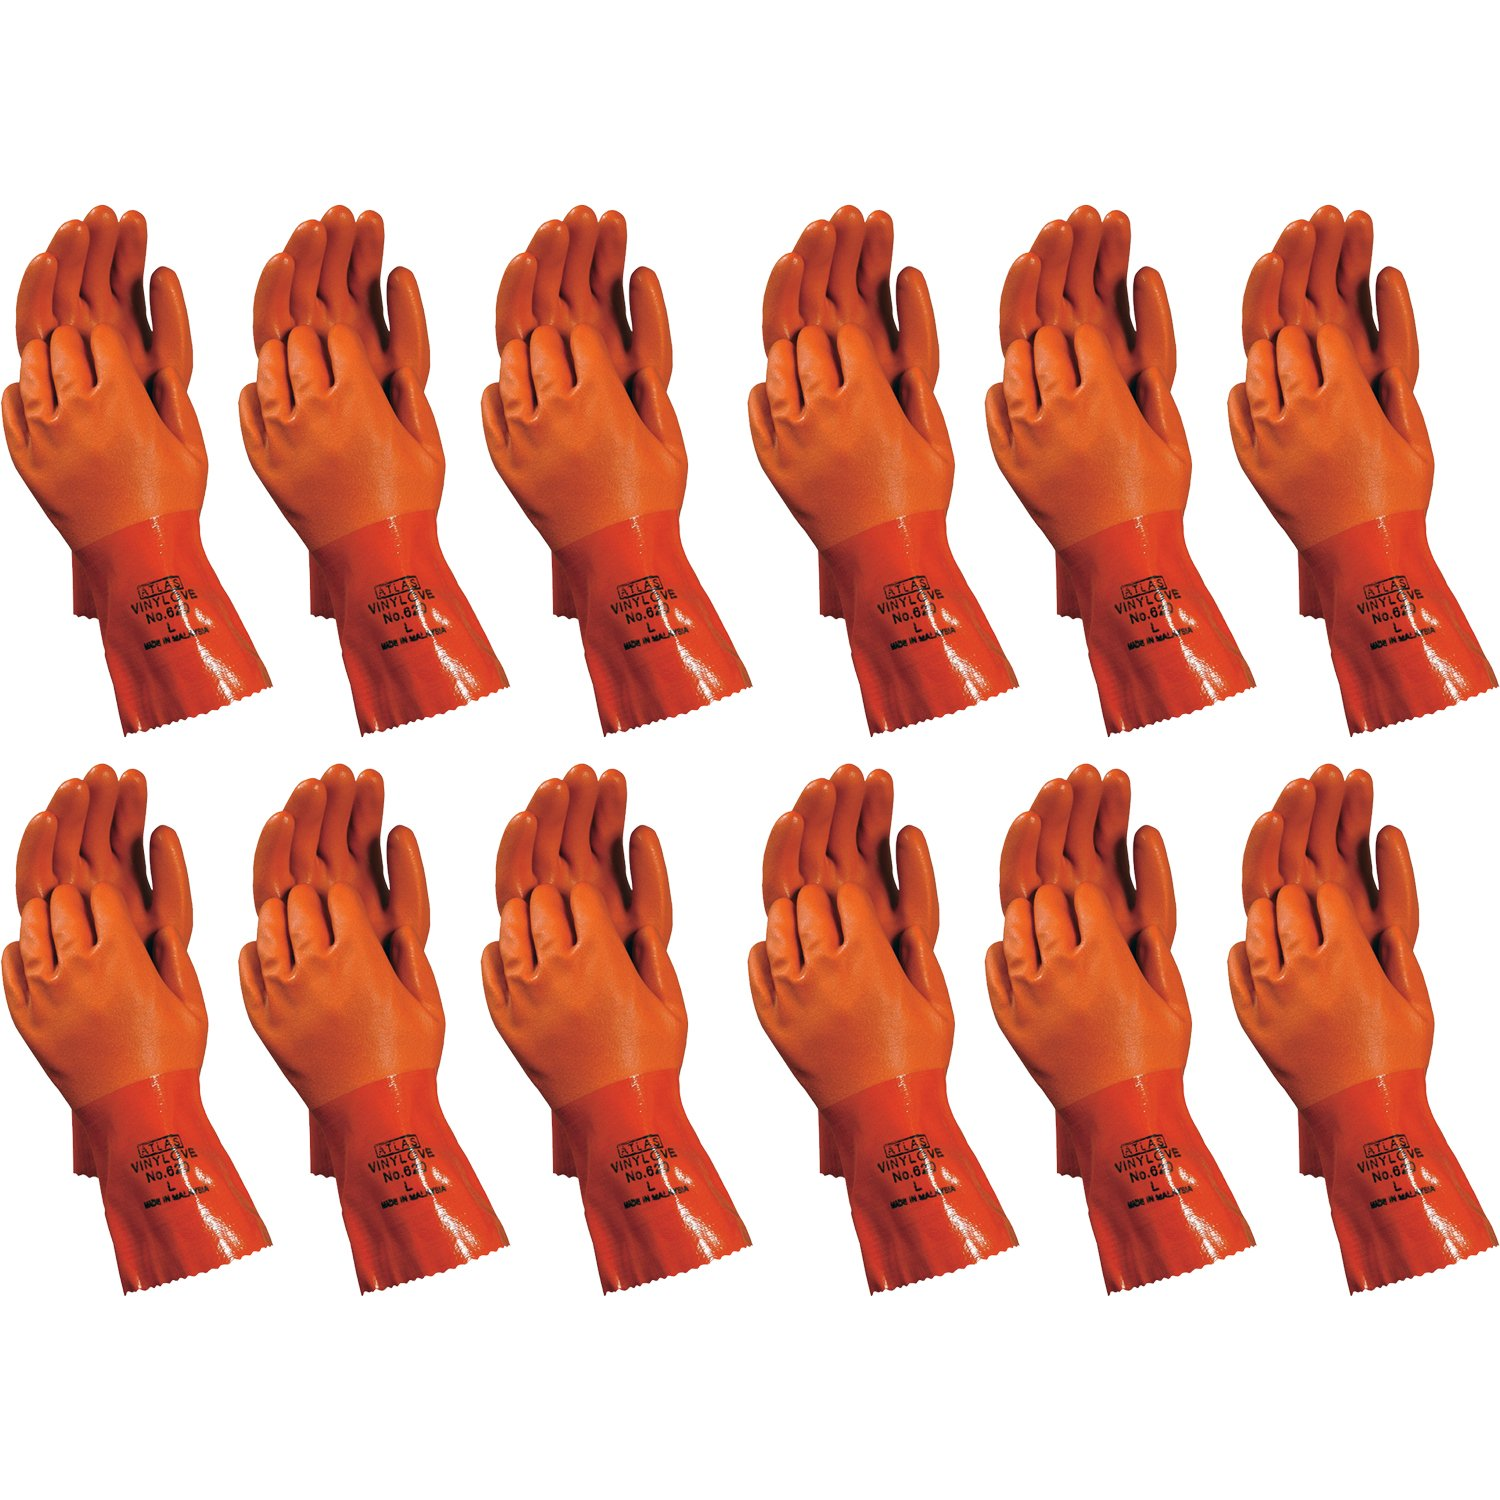 Atlas 620 Vinylove Double-Dipped Large PVC Chemical Resistant Gloves, 72-Pairs by ATLAS (Image #1)